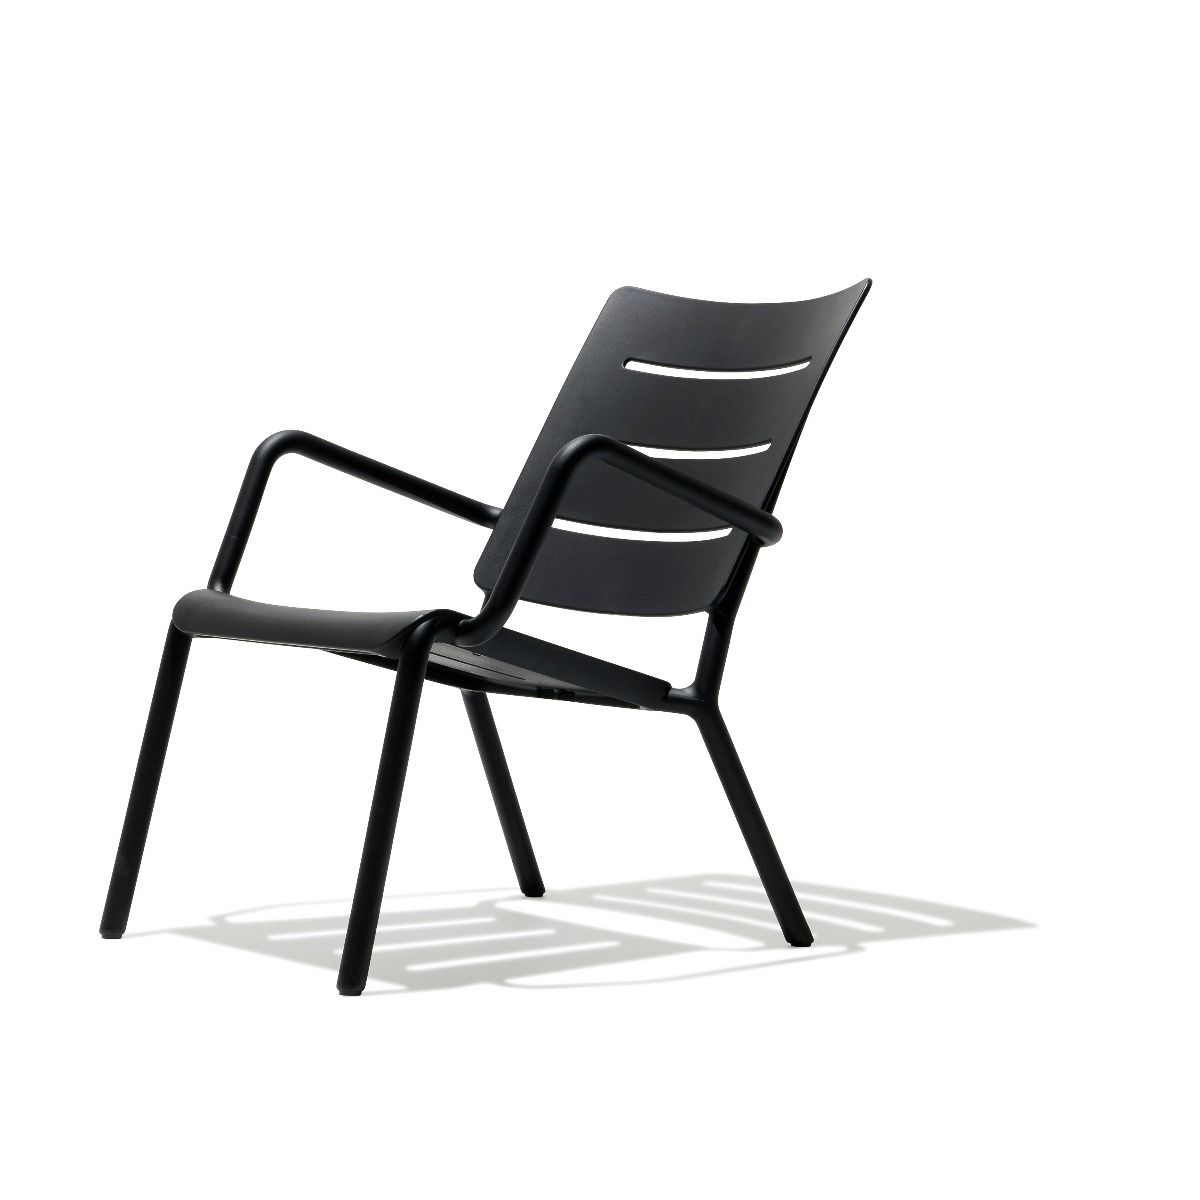 Outo Lounge Chair Chair Lounge Chair Outdoor Furniture Chairs